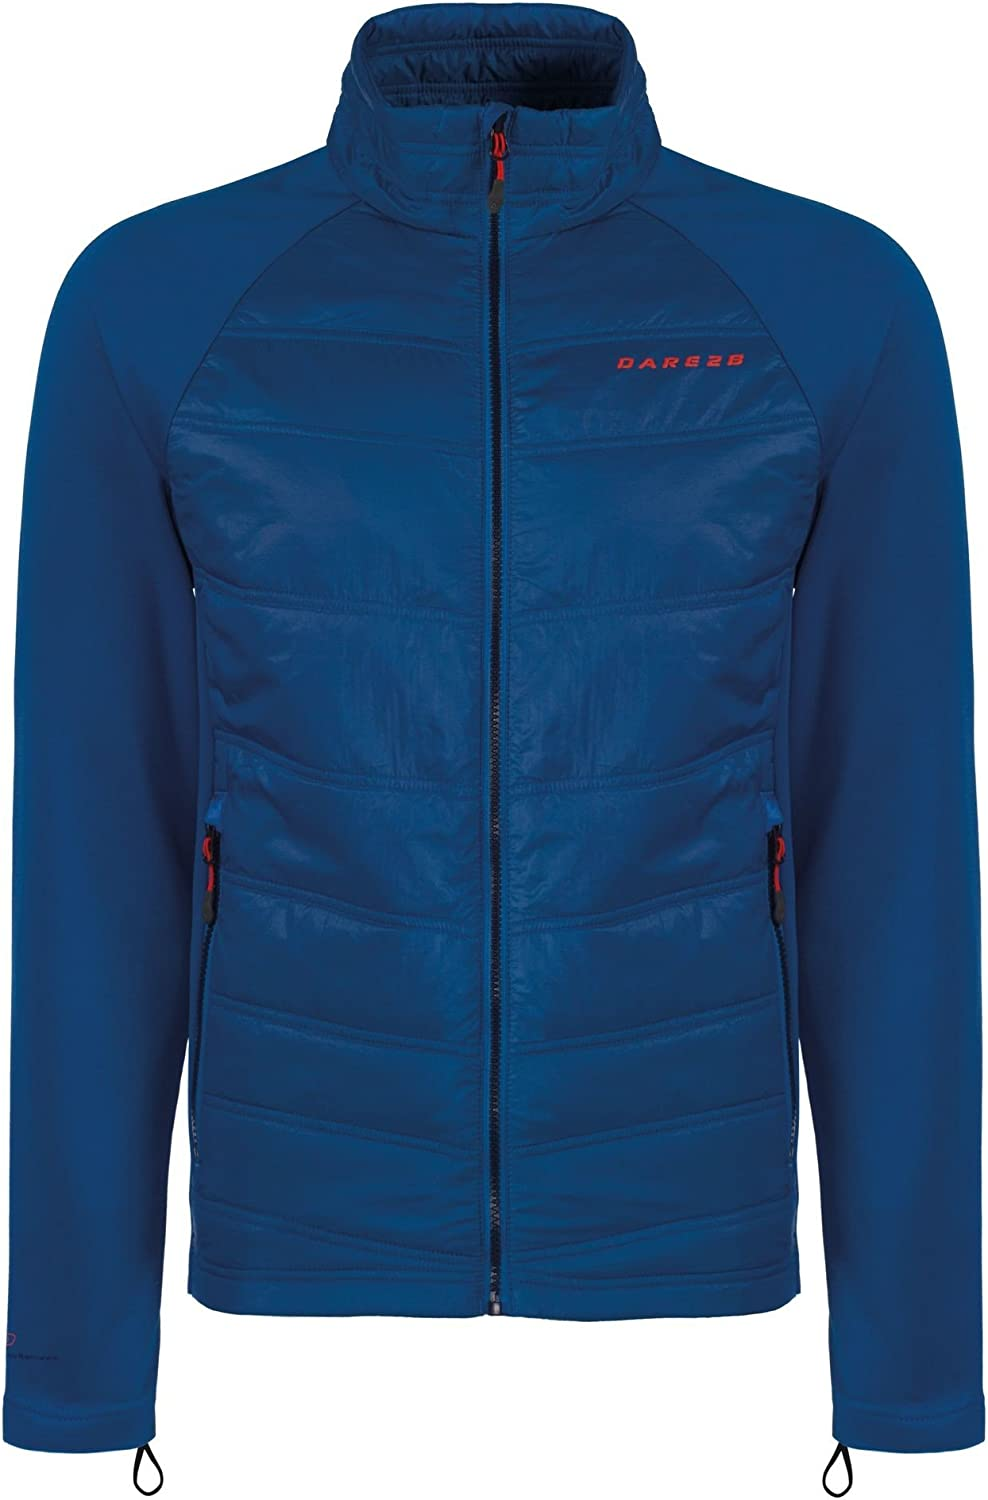 Dare 2b Mens Edge Off Polyamide Wicking Insulated Hybrid Jacket